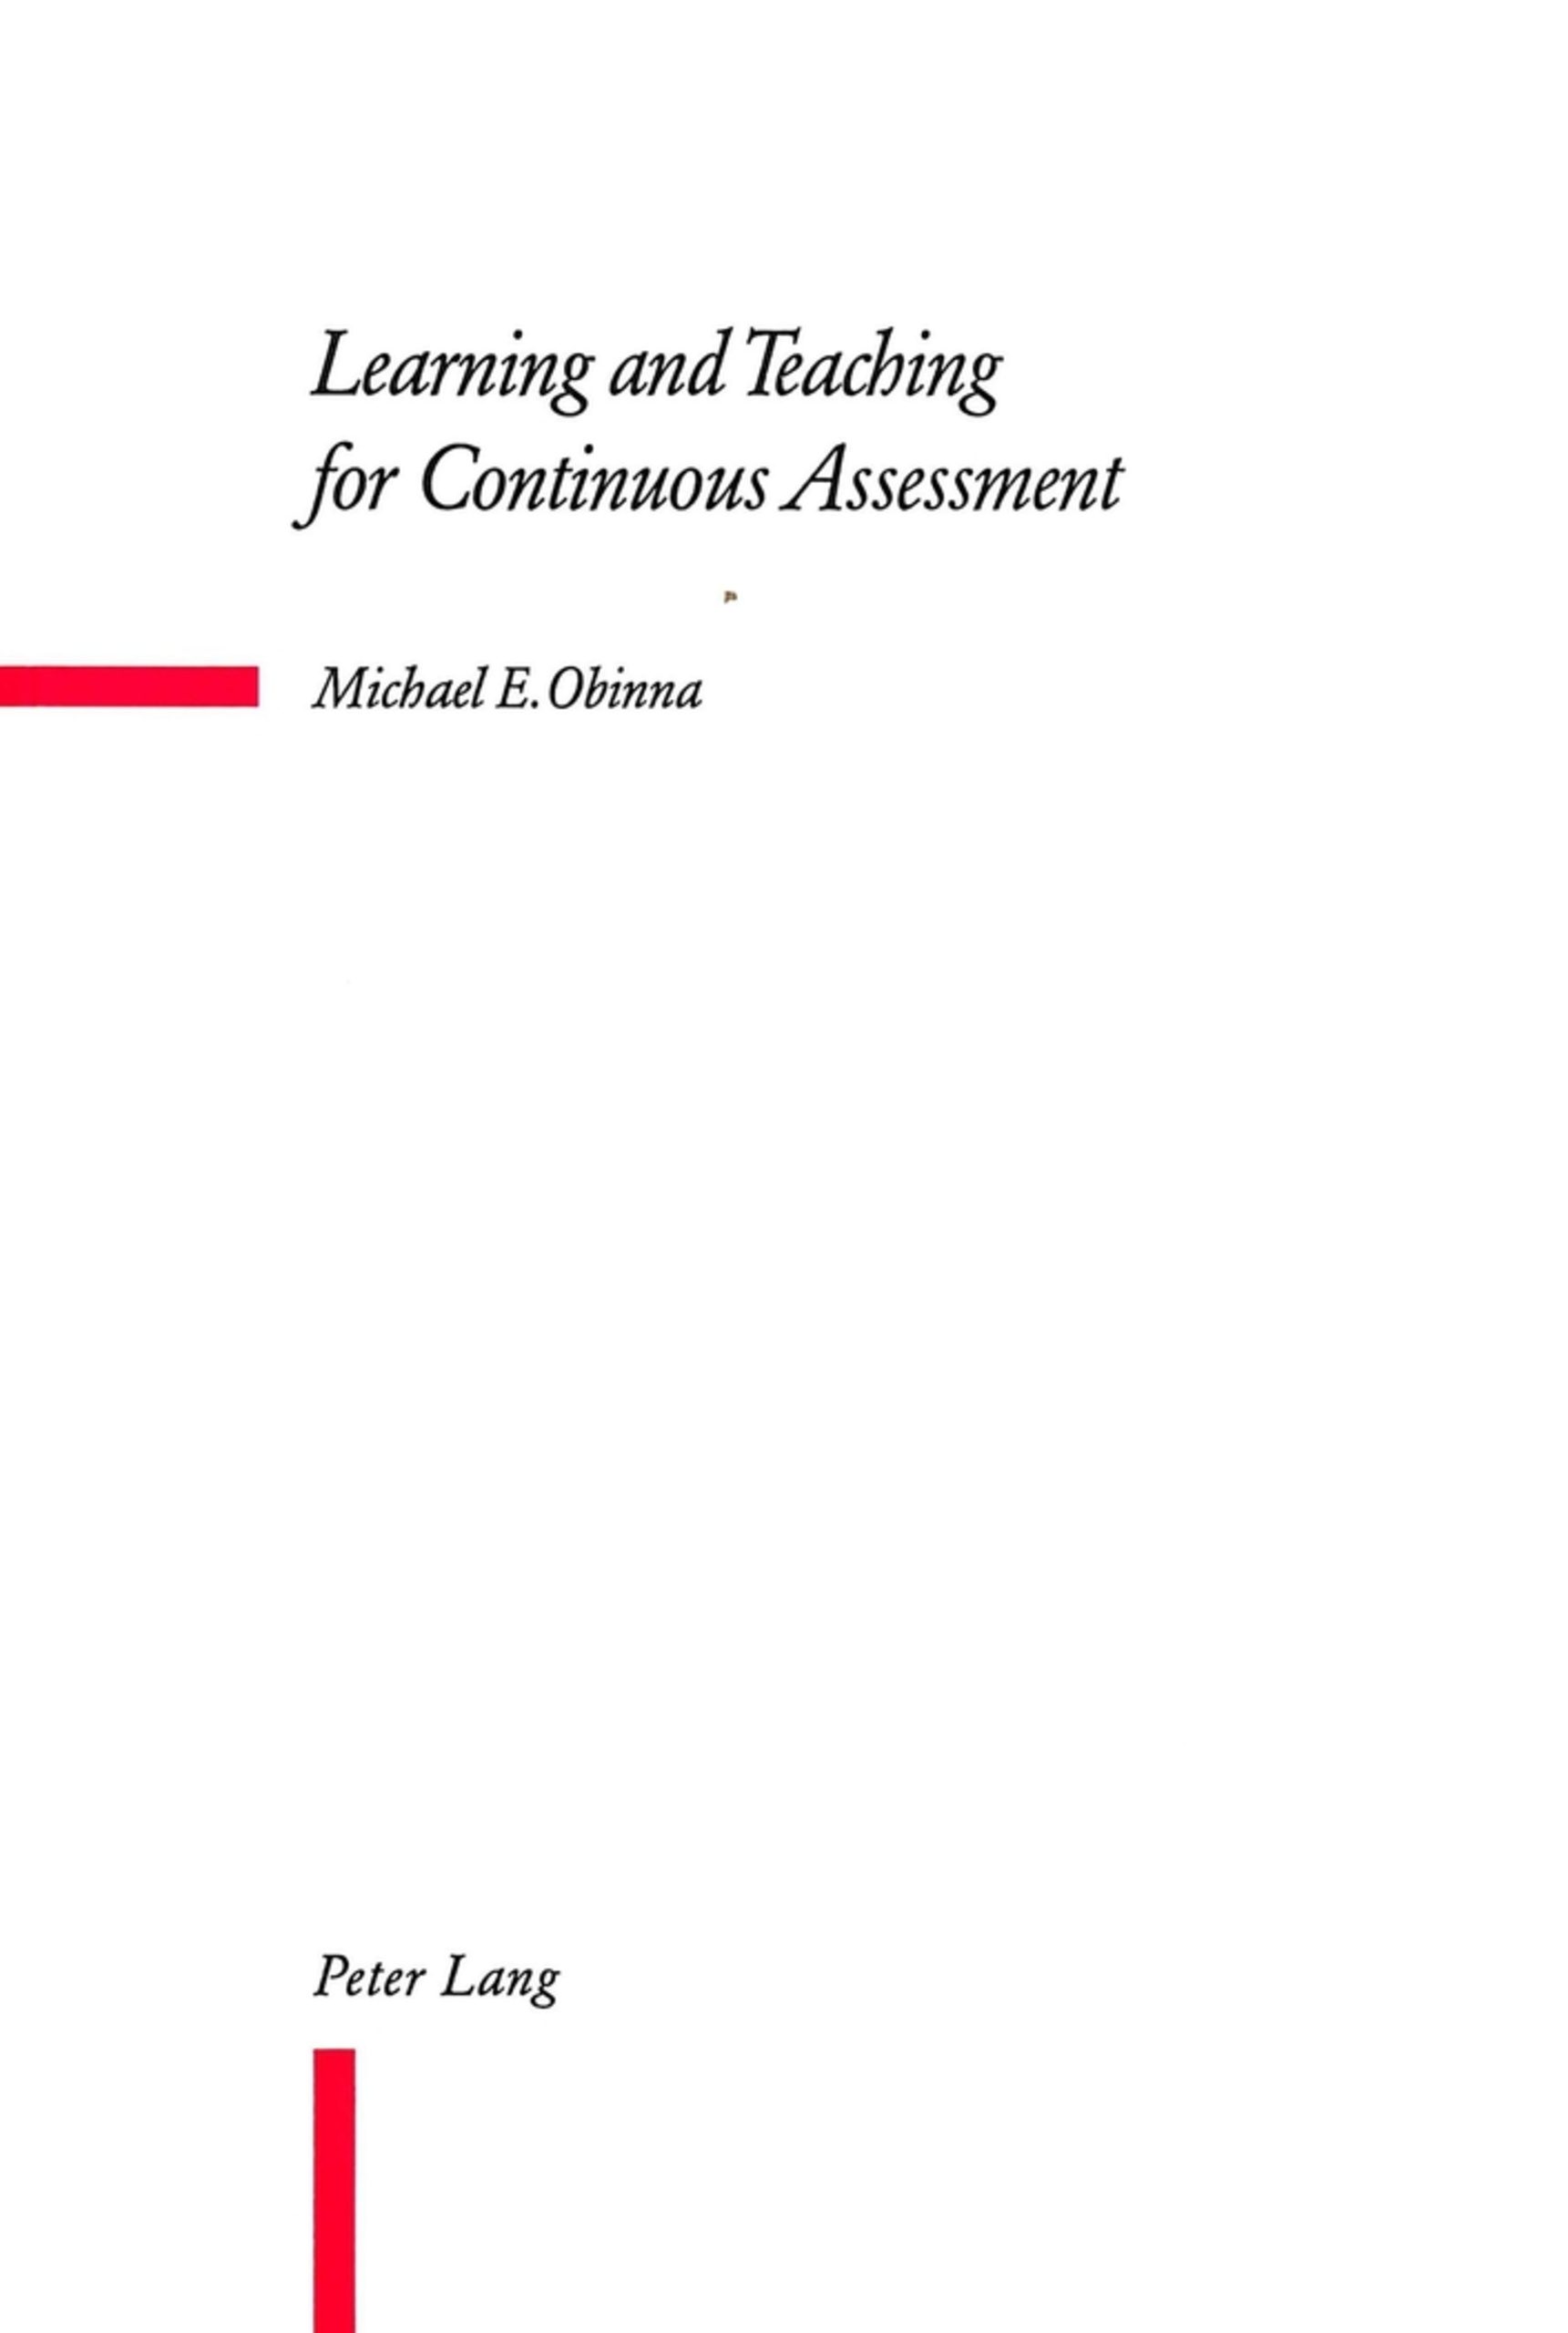 Title: Learning and Teaching for Continuous Assessment